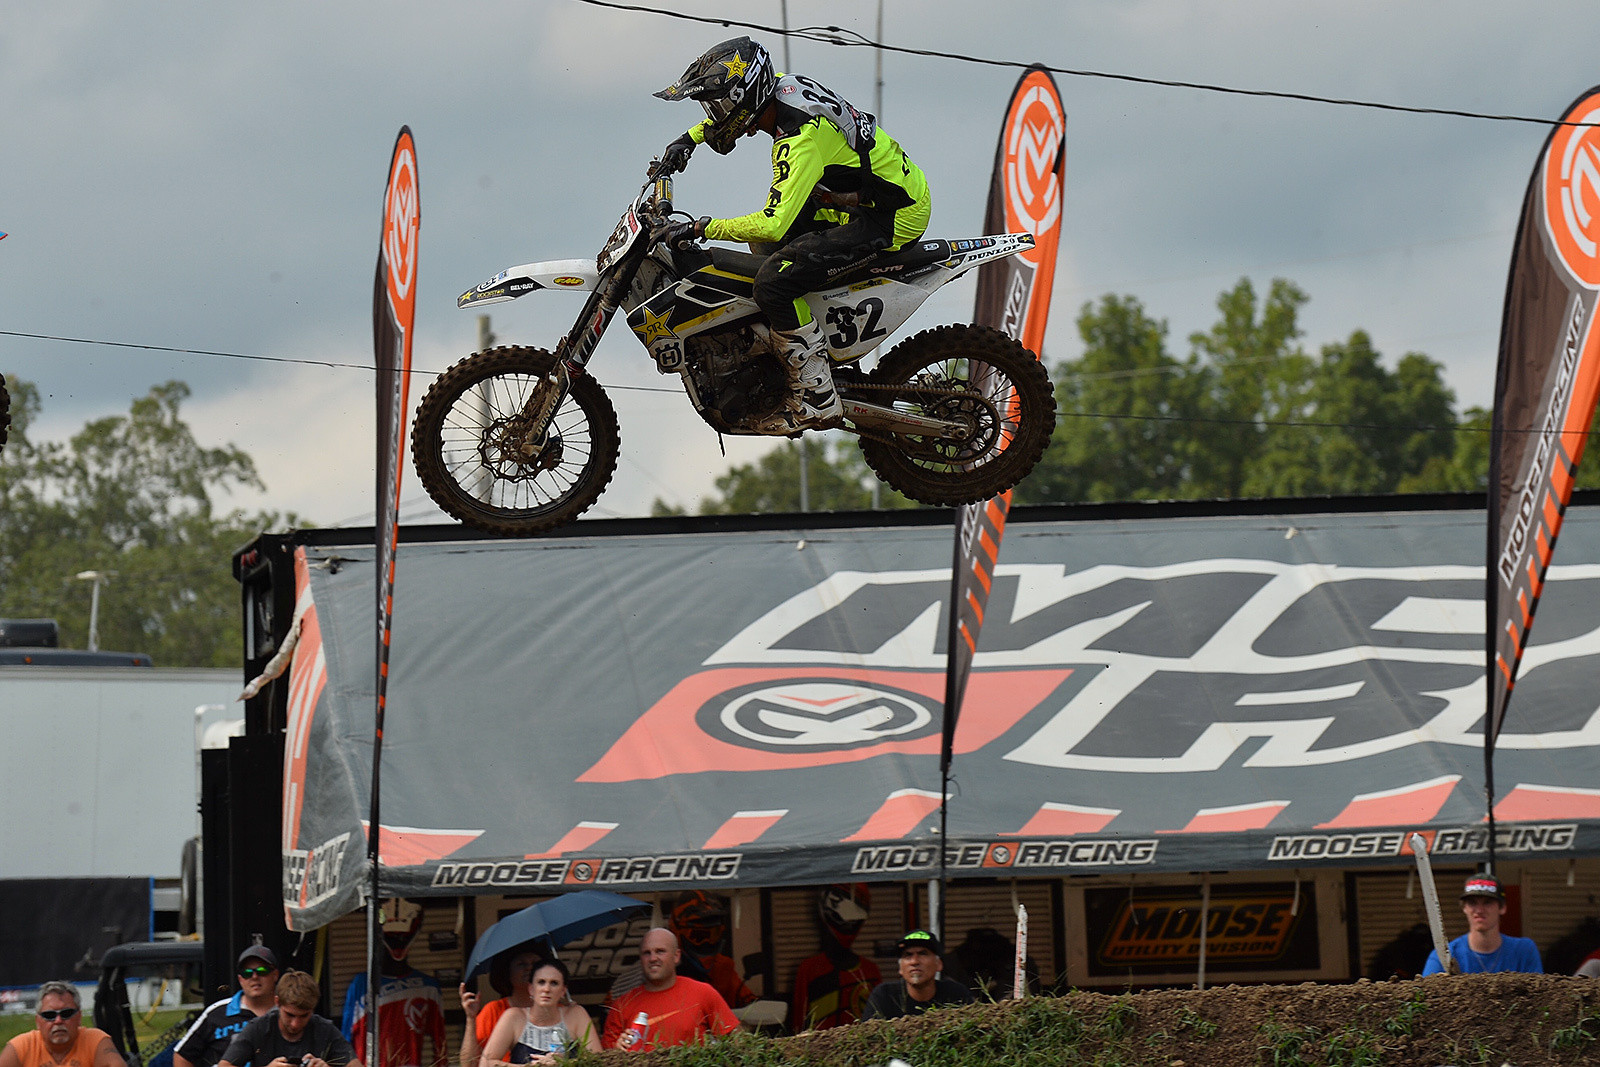 Florida's Jordan Bailey ultimately took the Moto 3 win in the Open Pro Sport class, but it's Justin Cooper who will leave Loretta Lynn's with the championship.